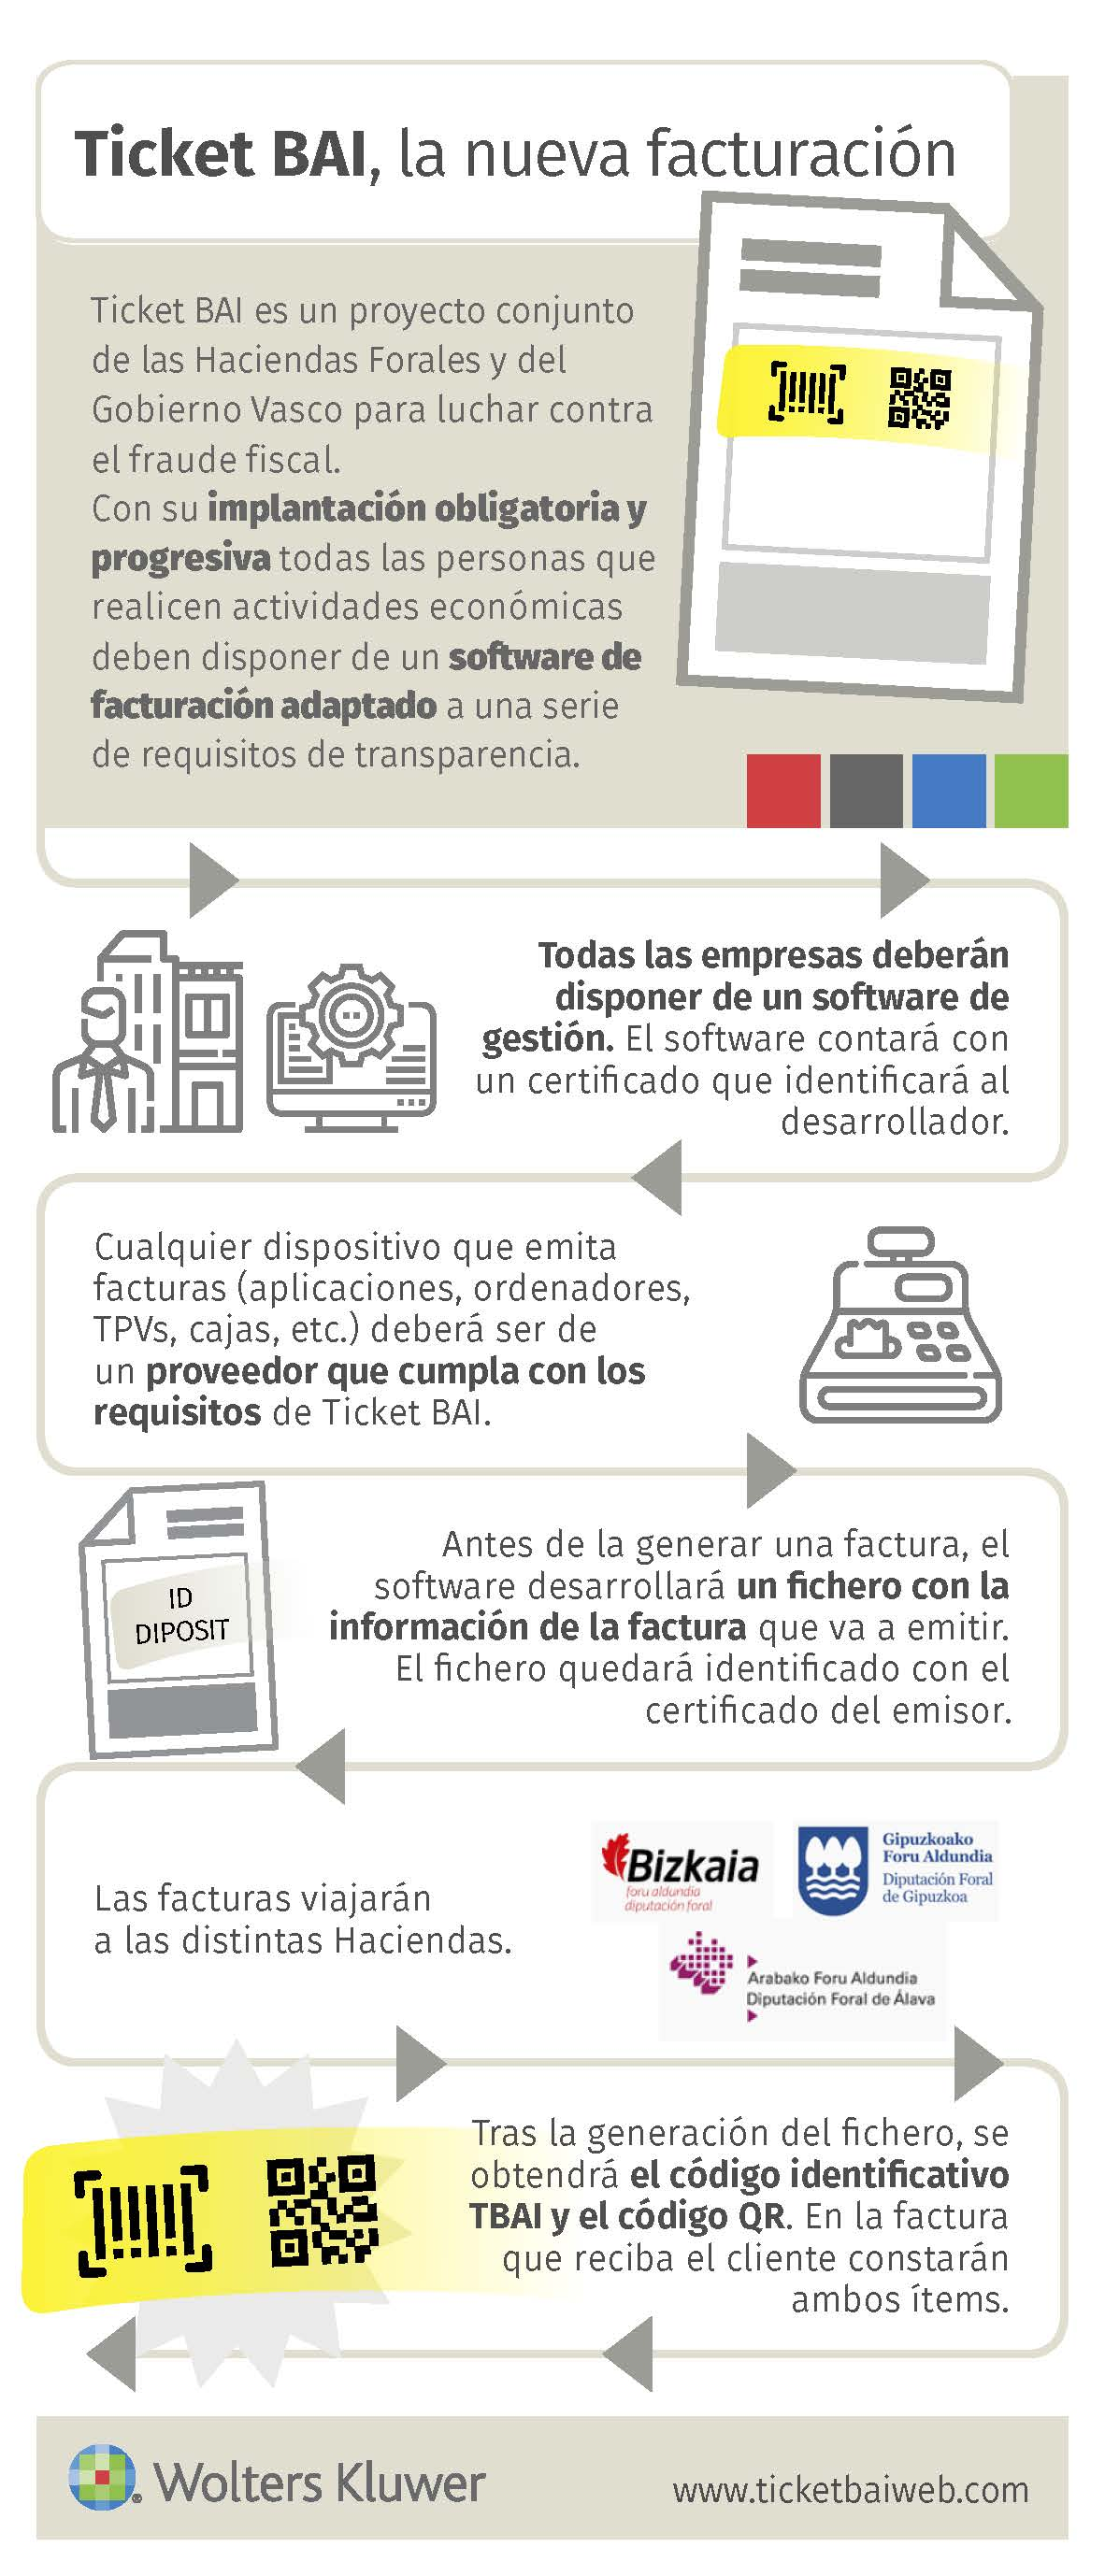 Ticketbai-nueva-facturacion